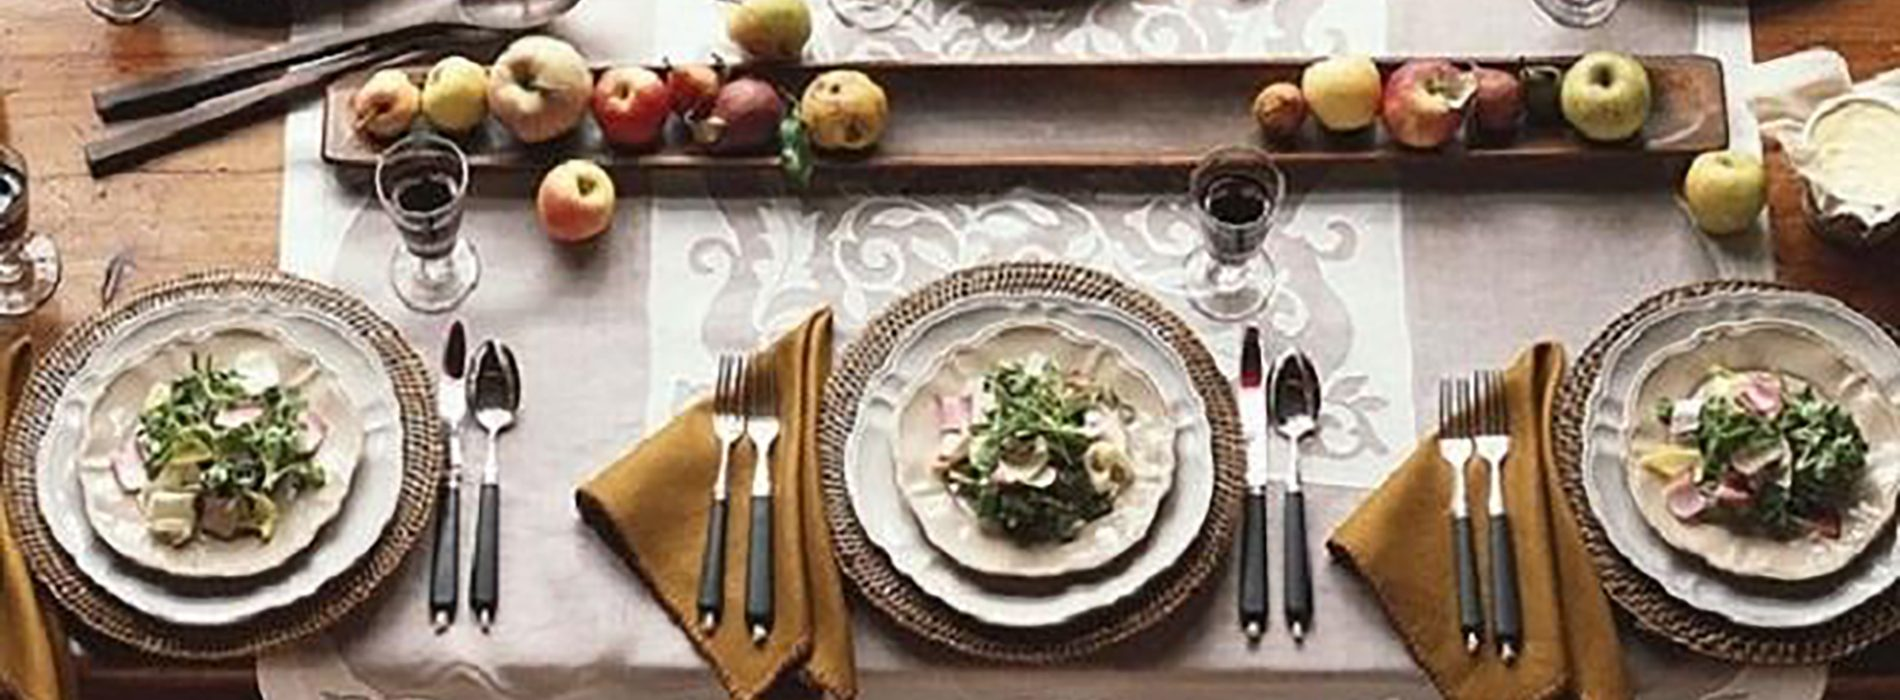 Table setting ideas for a simple dinner